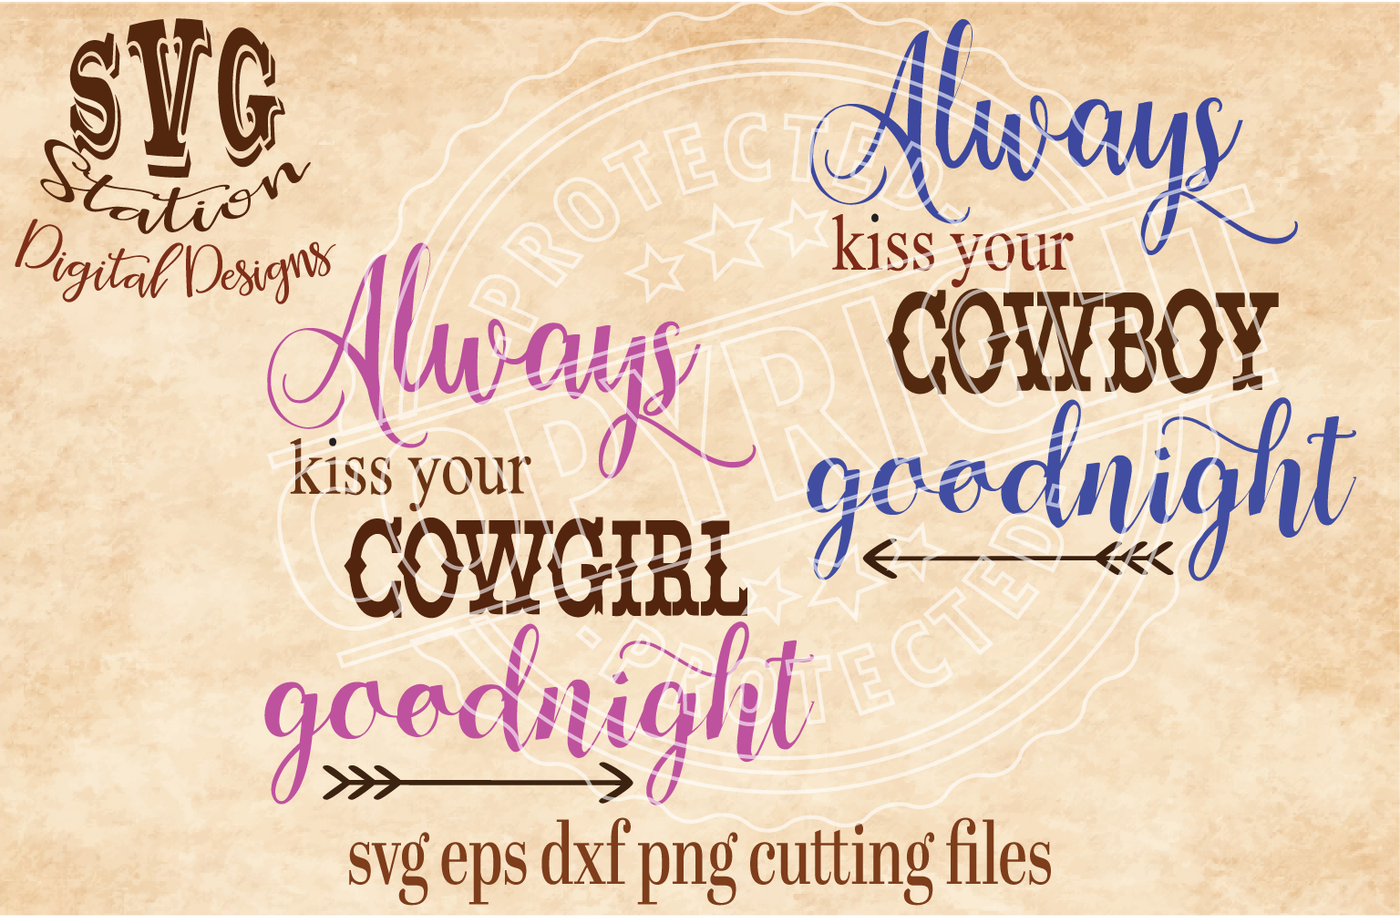 Always Kiss Your Cowboy Cowgirl Goodnight Svg Dxf Png Eps Cutting File Silhouette Cricut By Svg Station Thehungryjpeg Com